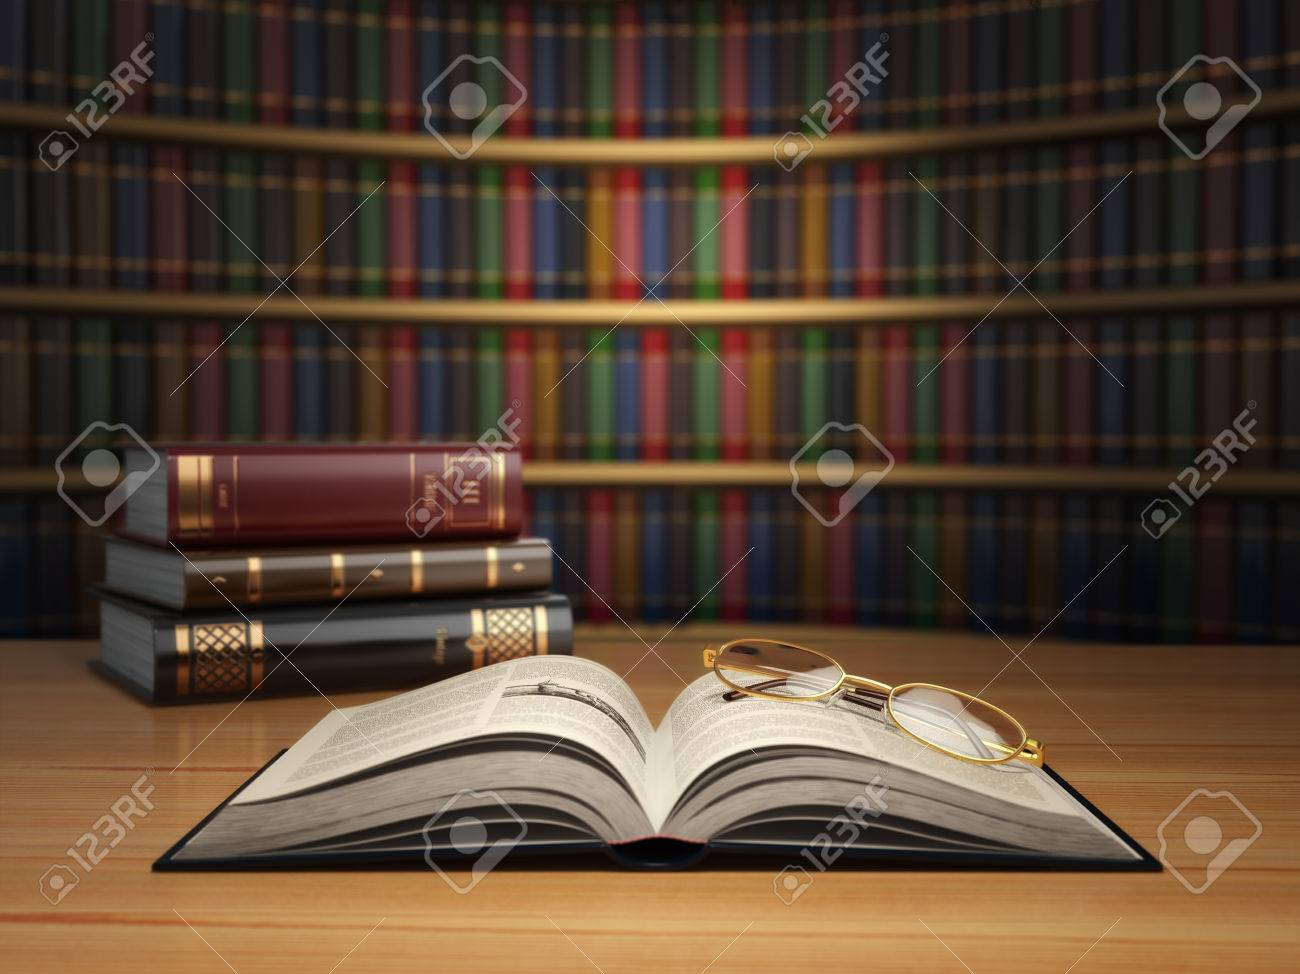 Stock Photo - Vintage books in library. Concept of education or book store.  3d